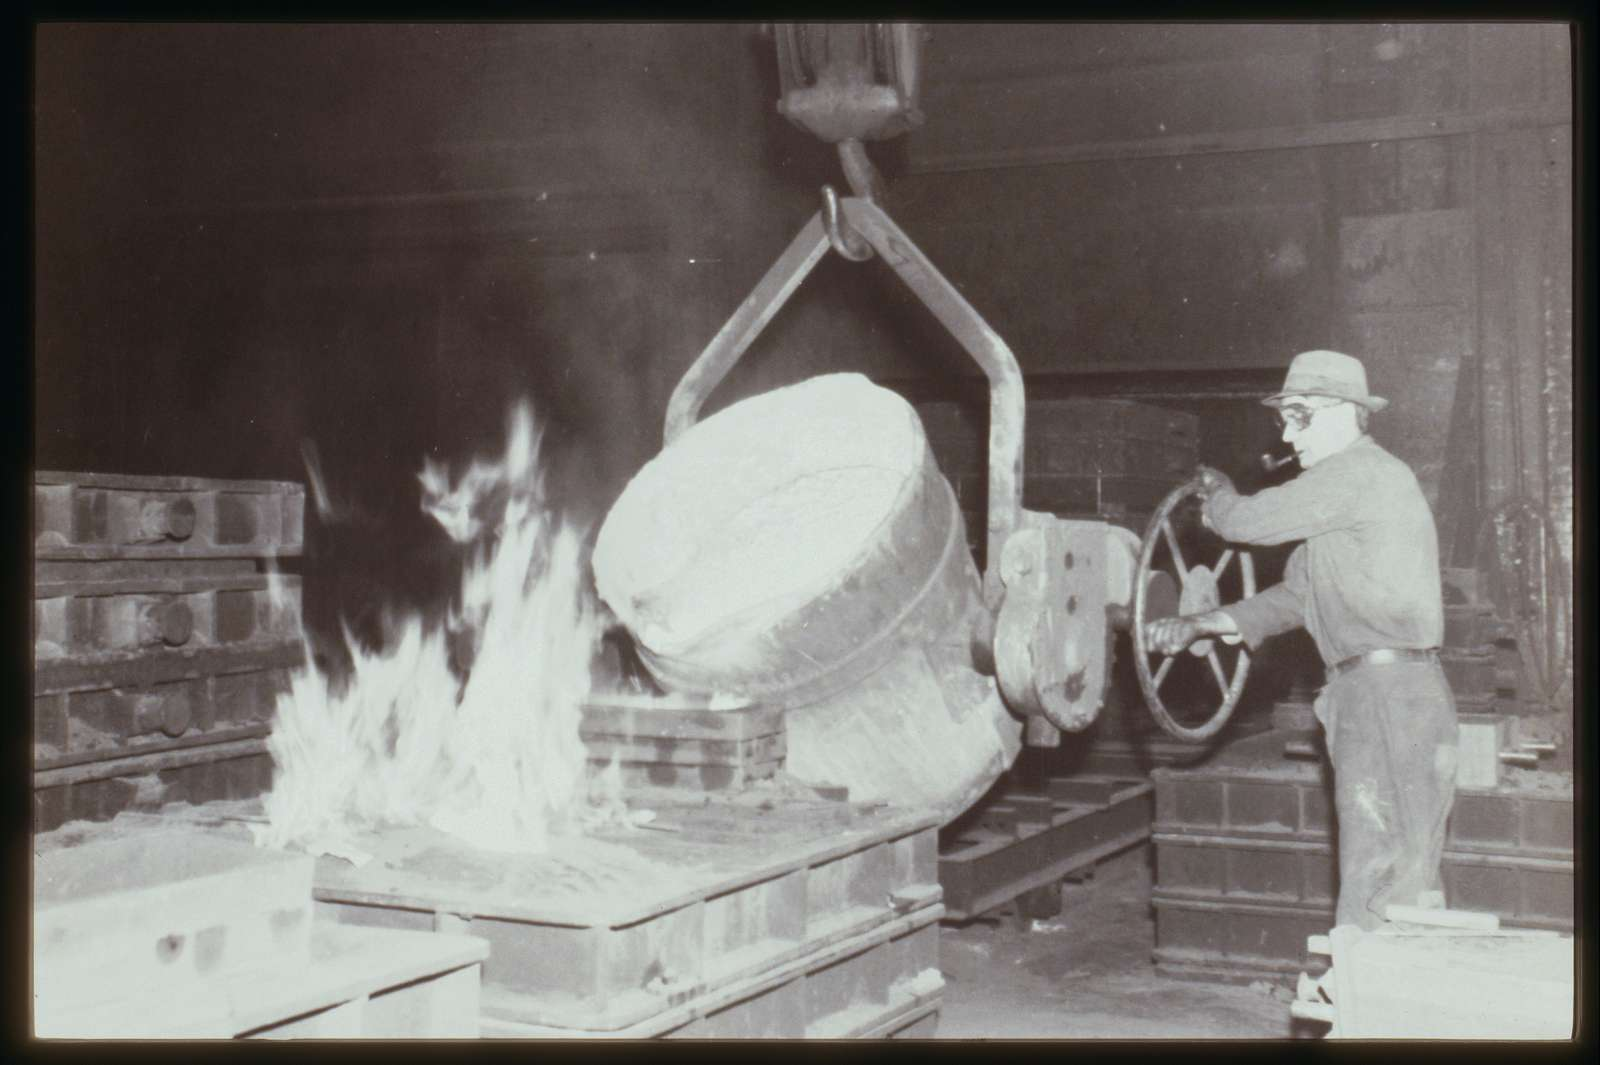 Making a cast in the foundry at Watson, 1970s.